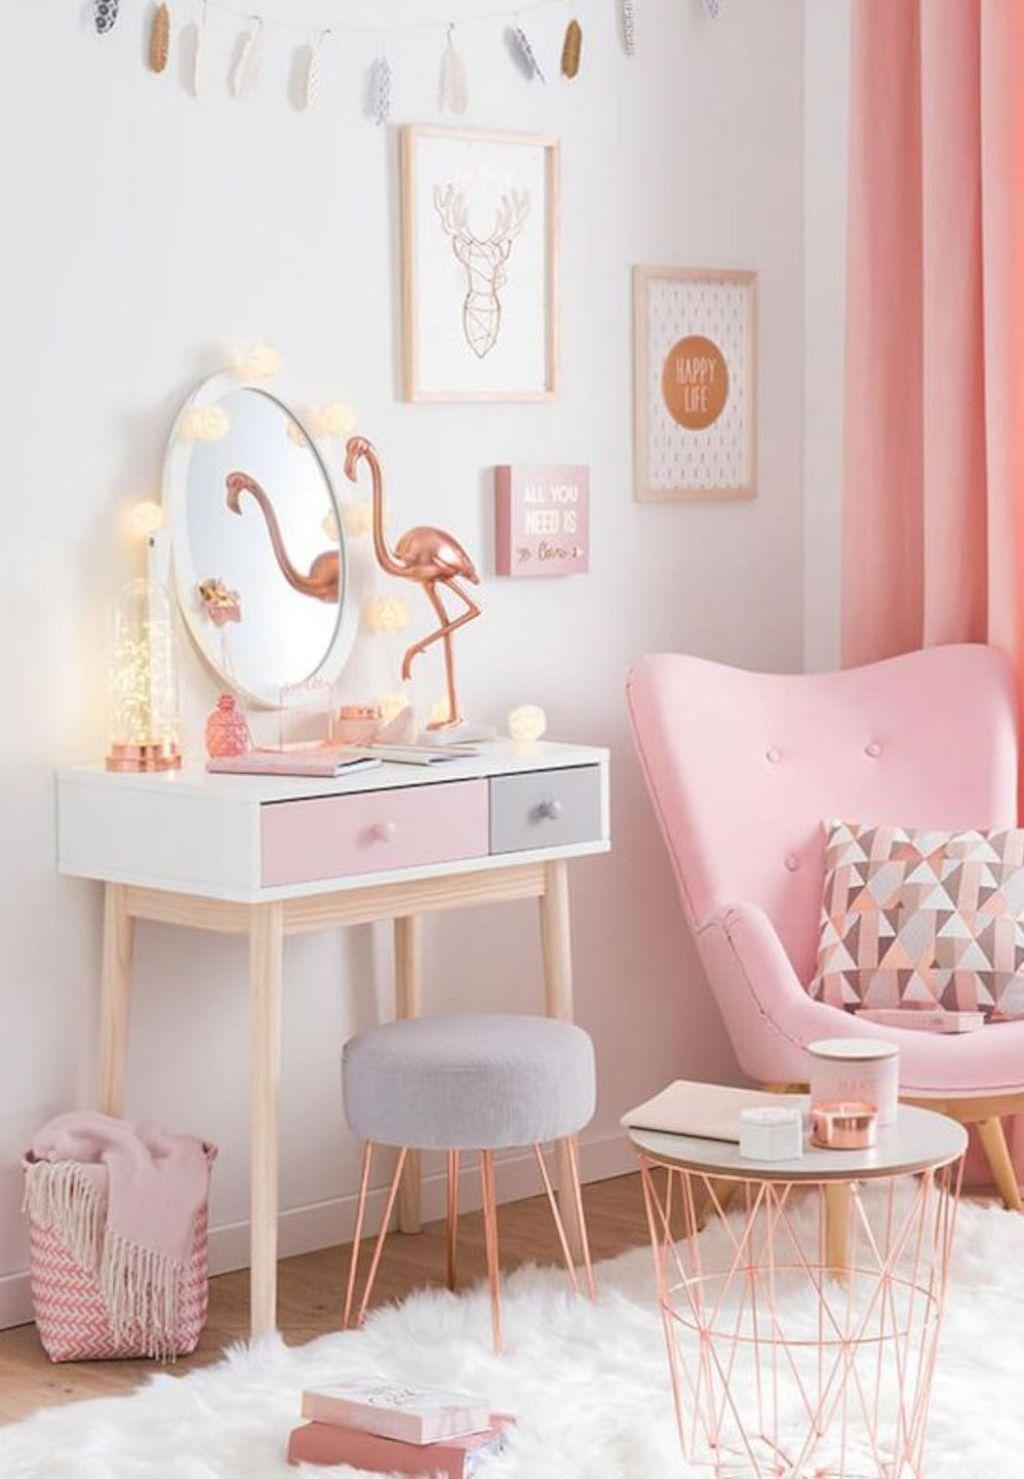 Comforter dressing room follows the decor of pastel shades from the rest of the room